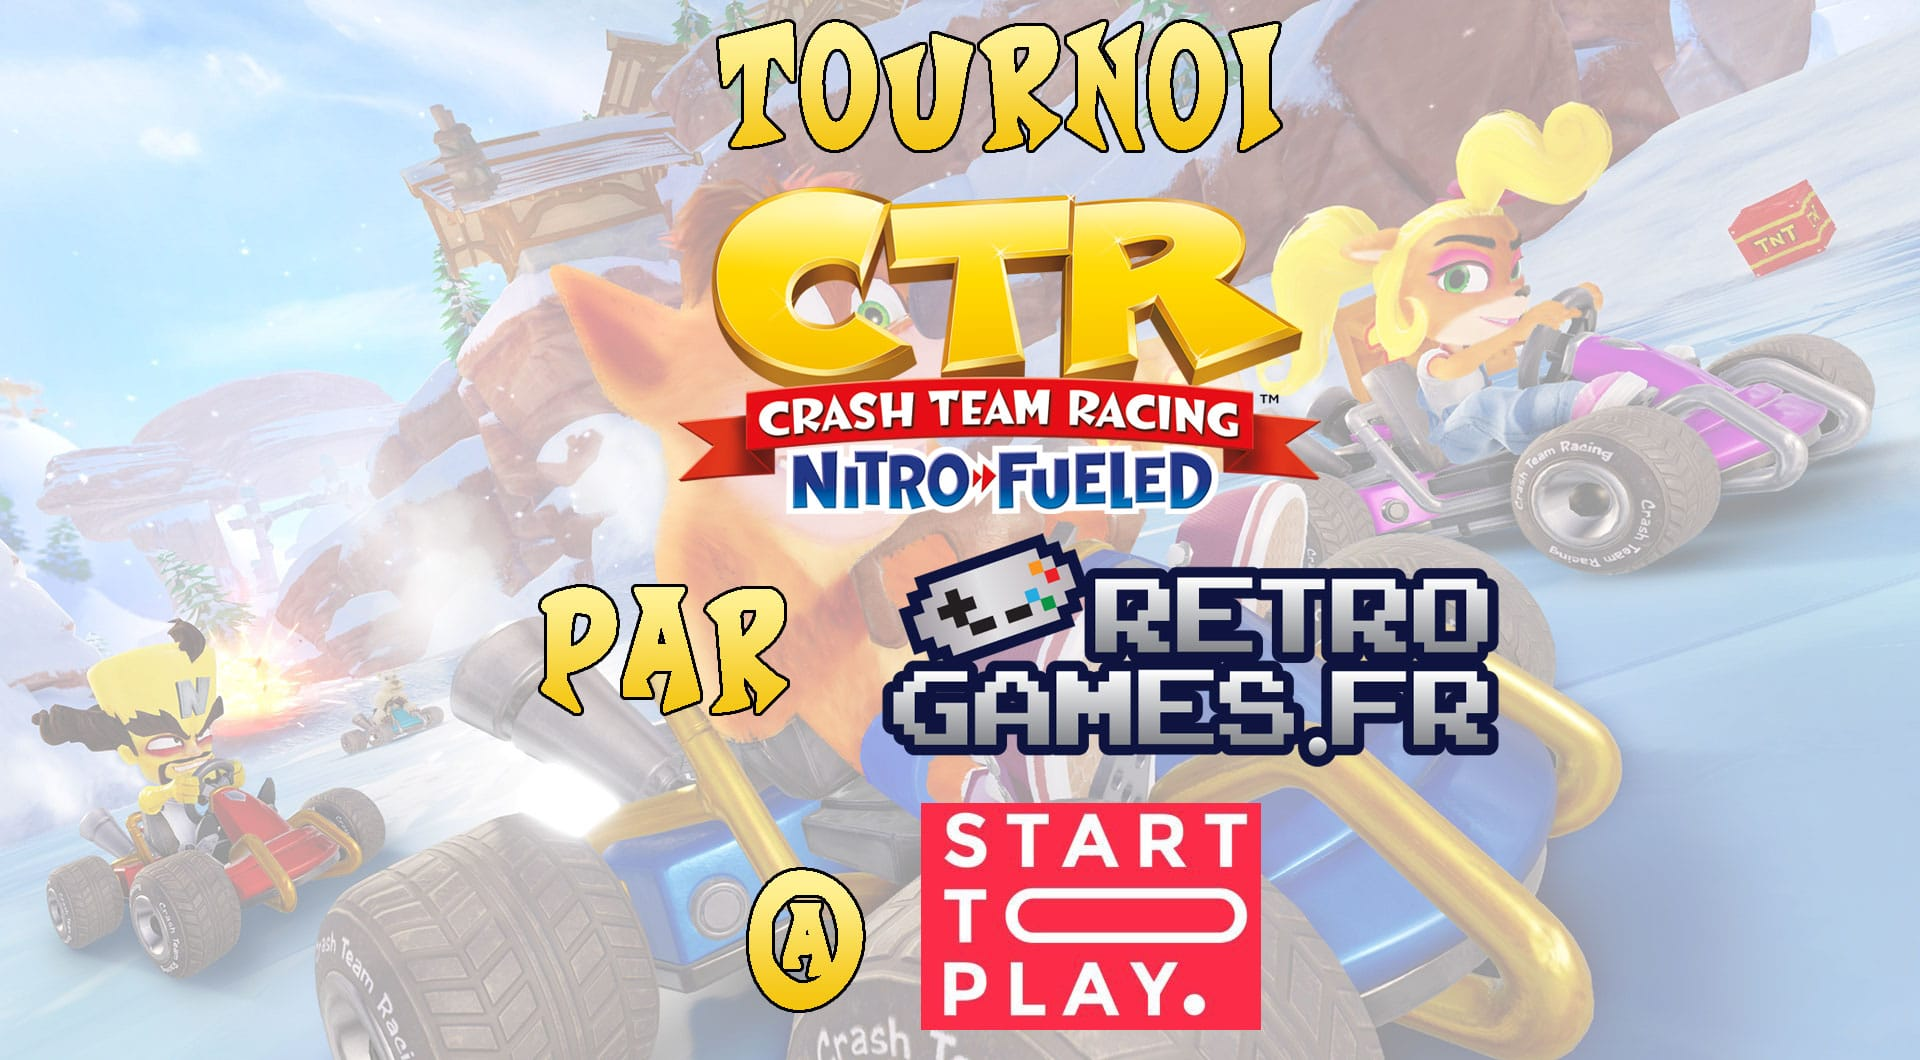 invitation au tournoi ctr a start to play 2019